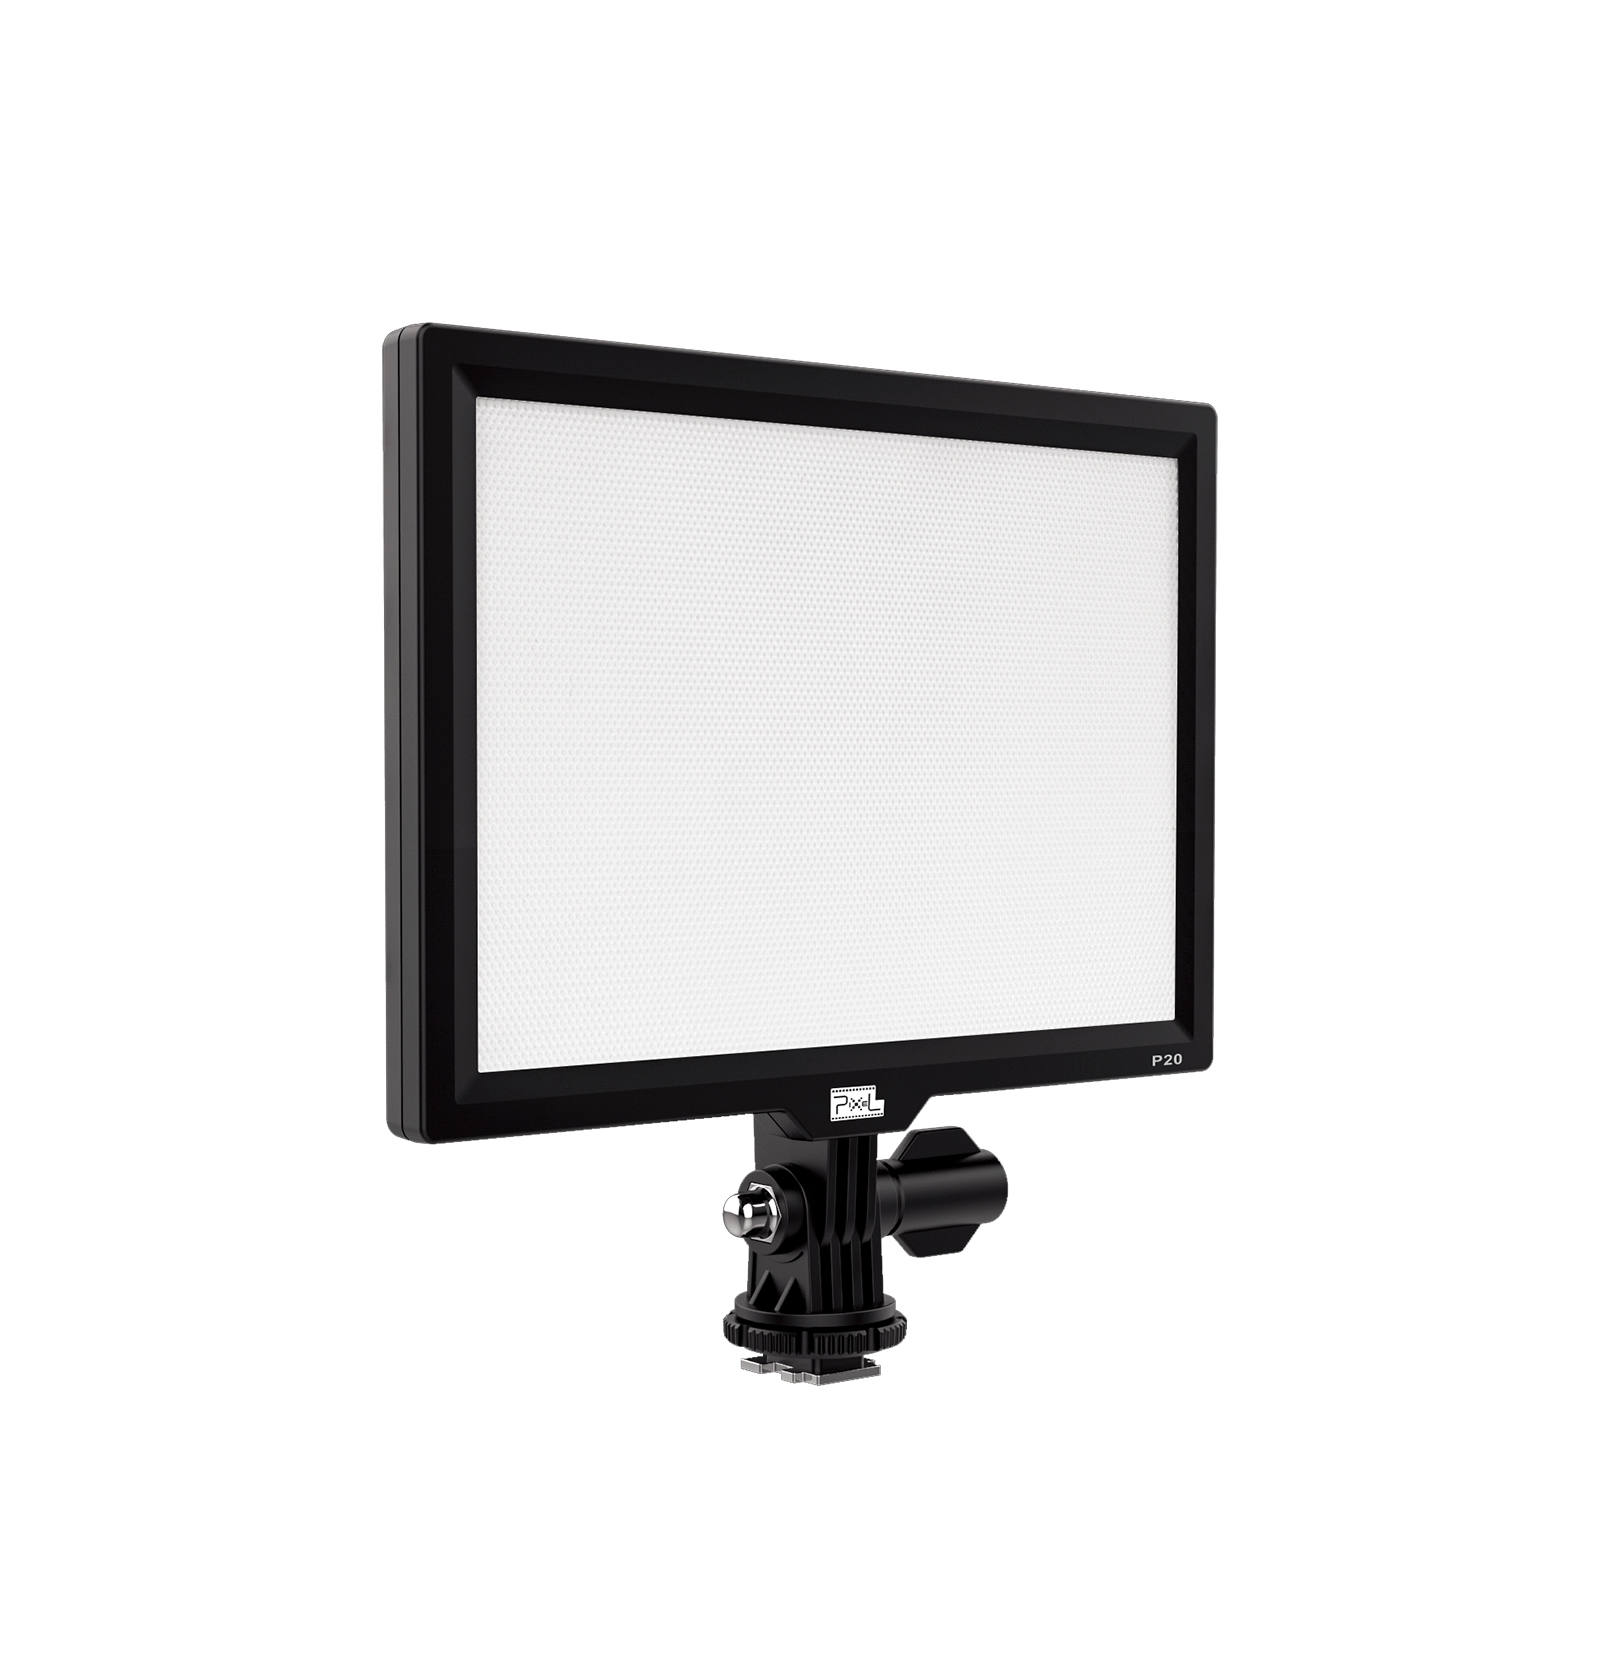 Pixel P20 Panel Light, super wide area color temperature,100 degree saturation, light and portable, intelligent special effects and flexible color palette